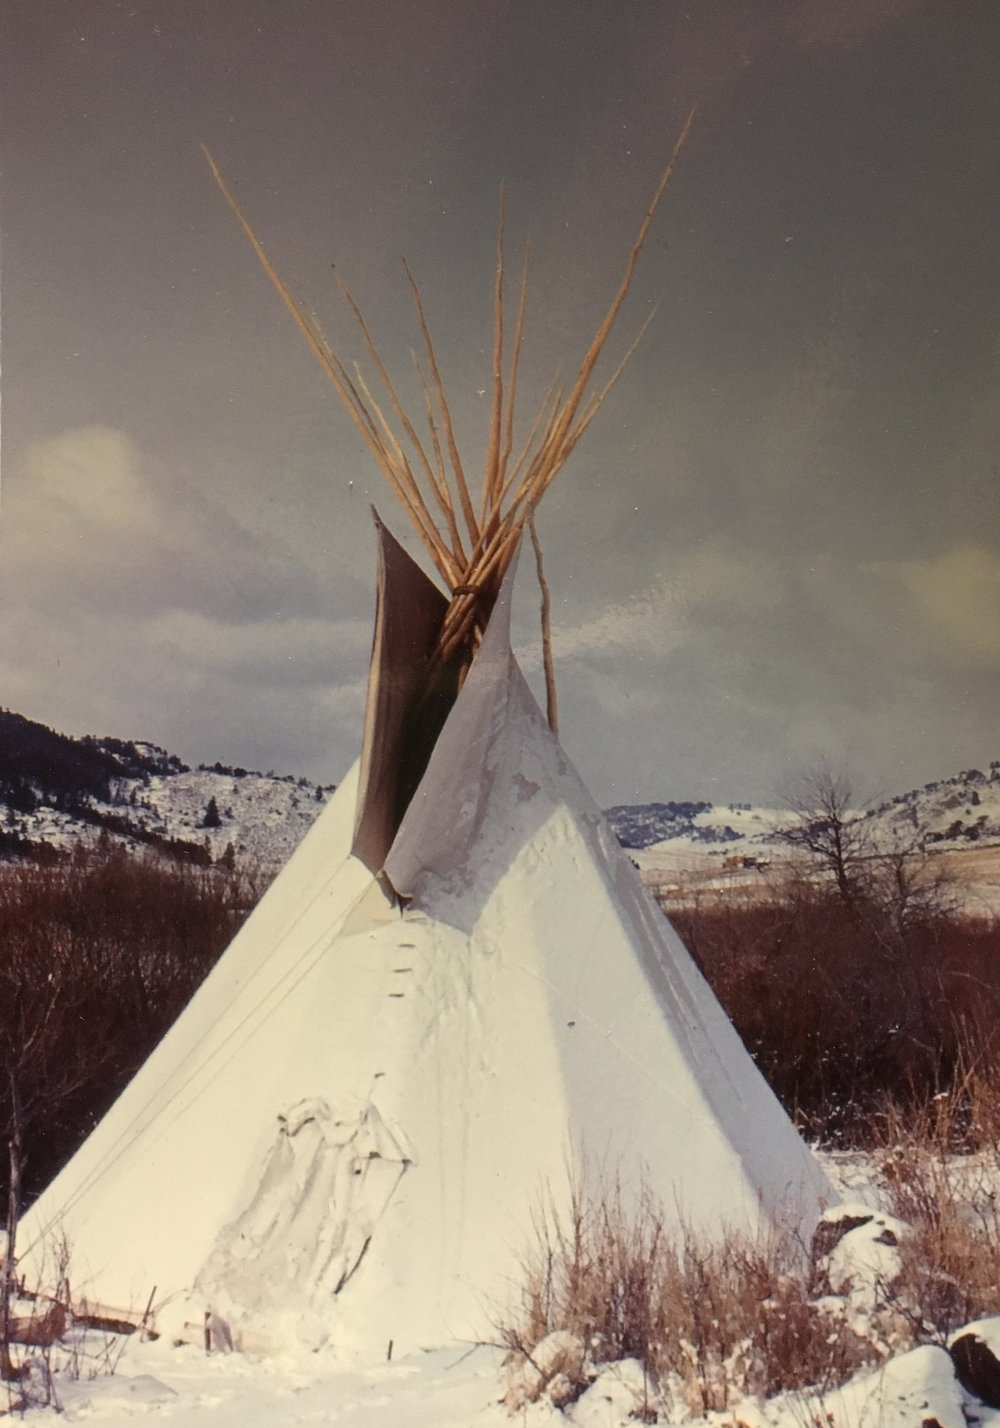 JudyJo's tipi that she constructed, north of Ft. Collins, Colorado.